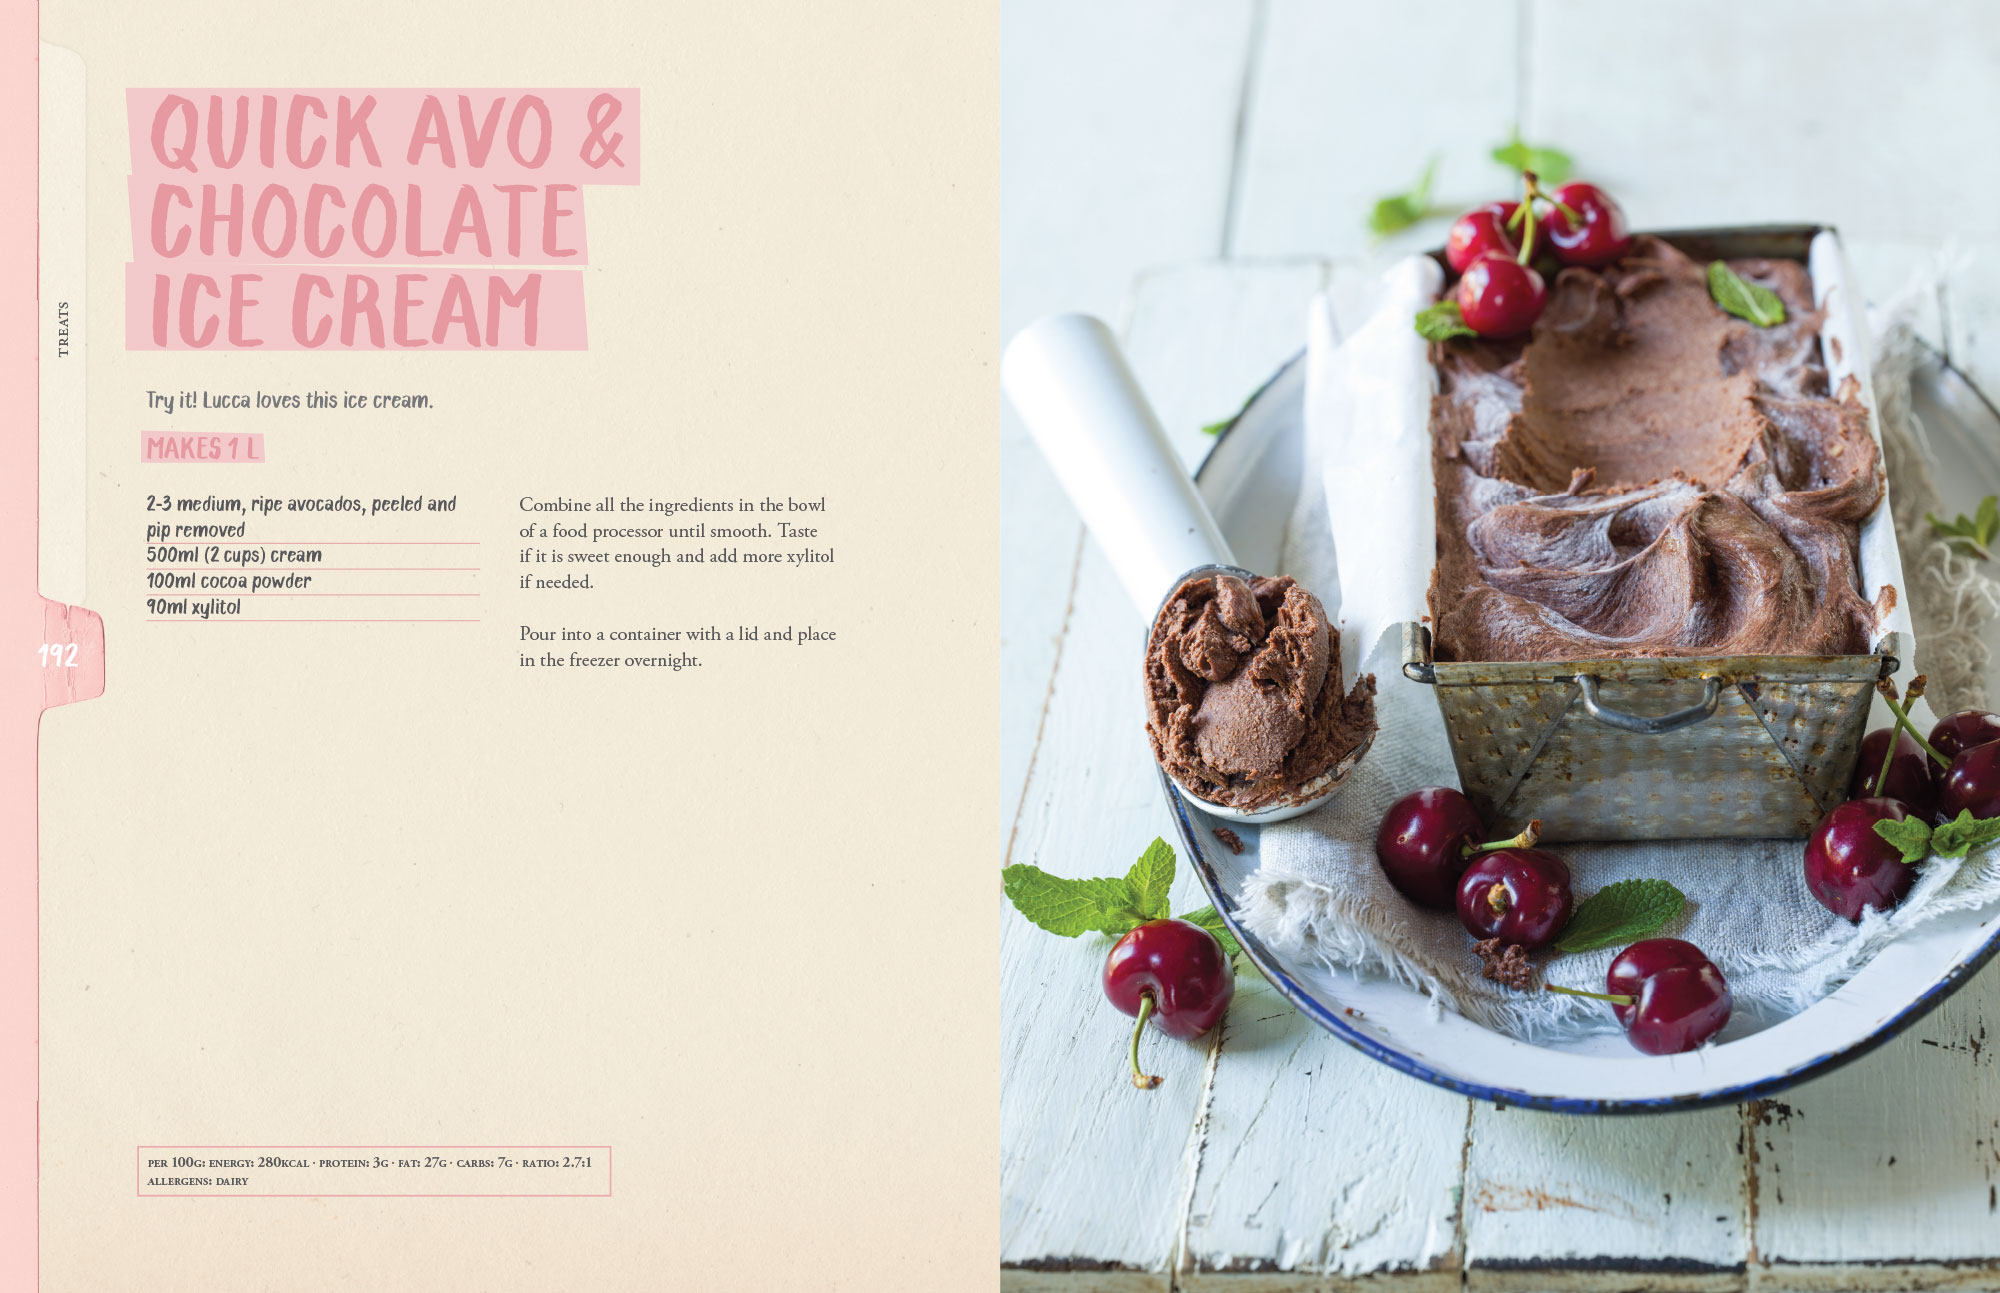 avo-chocolate-ice-cream-recipe Ice cream